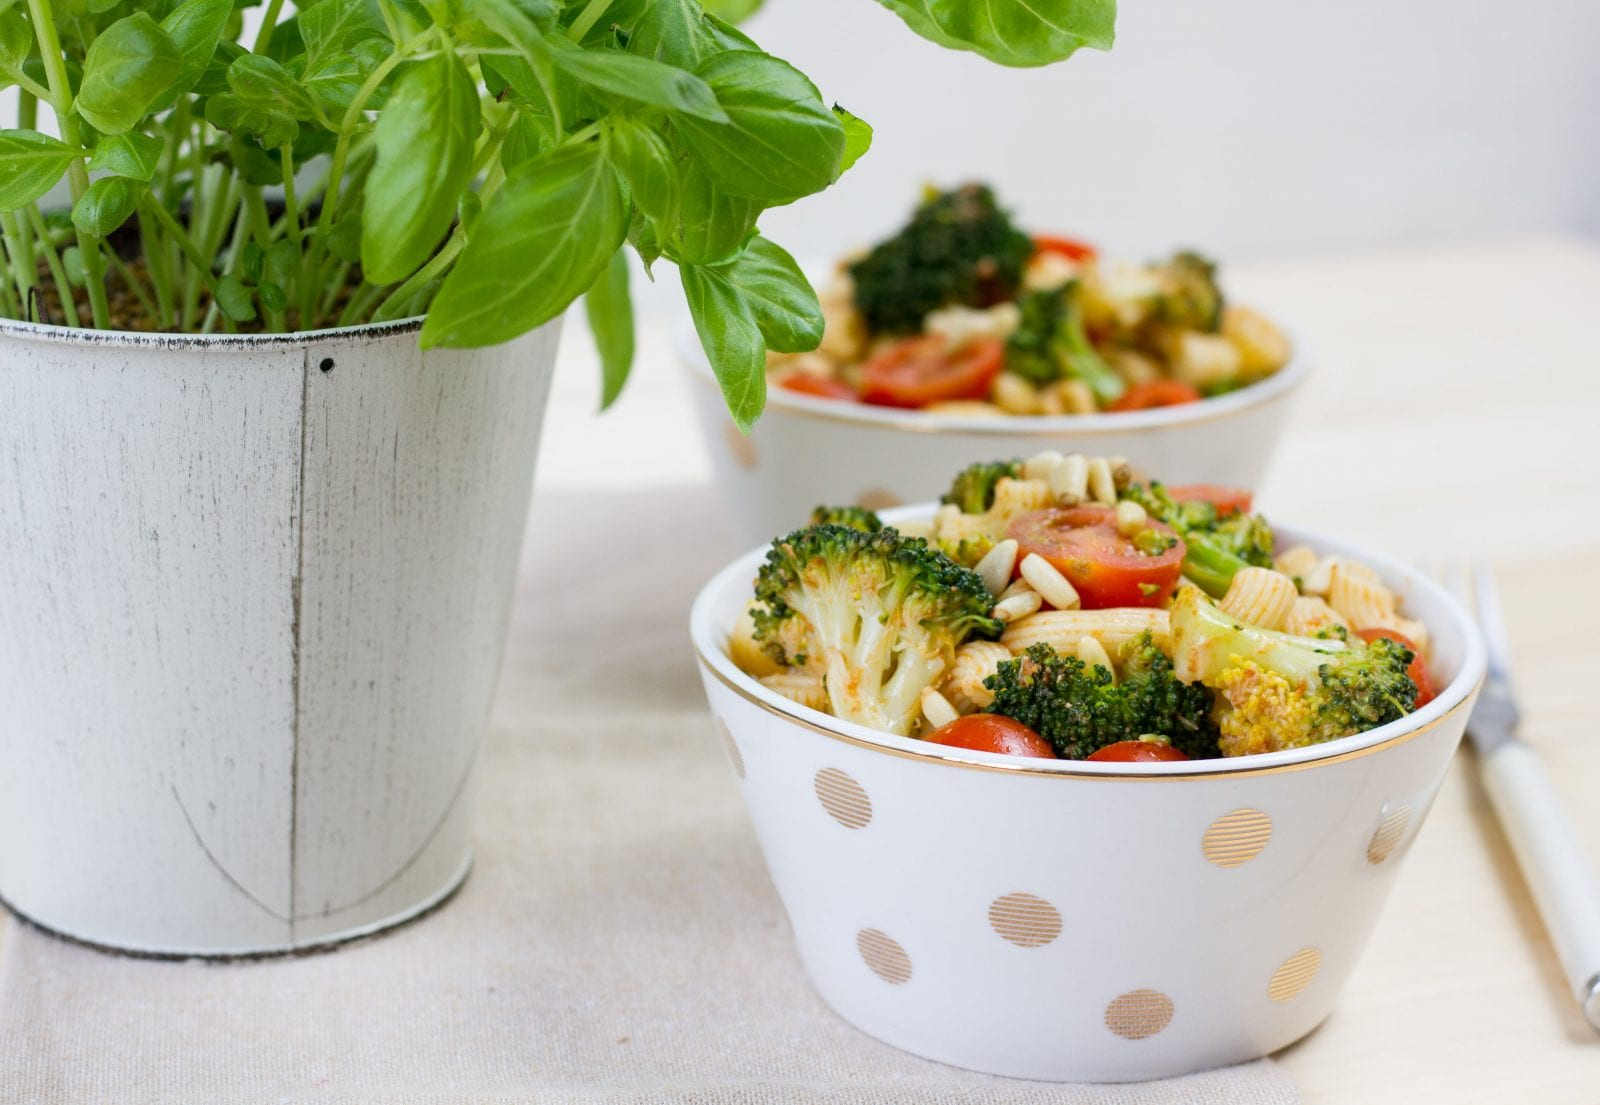 Pasta salad with tomatoes and broccoli